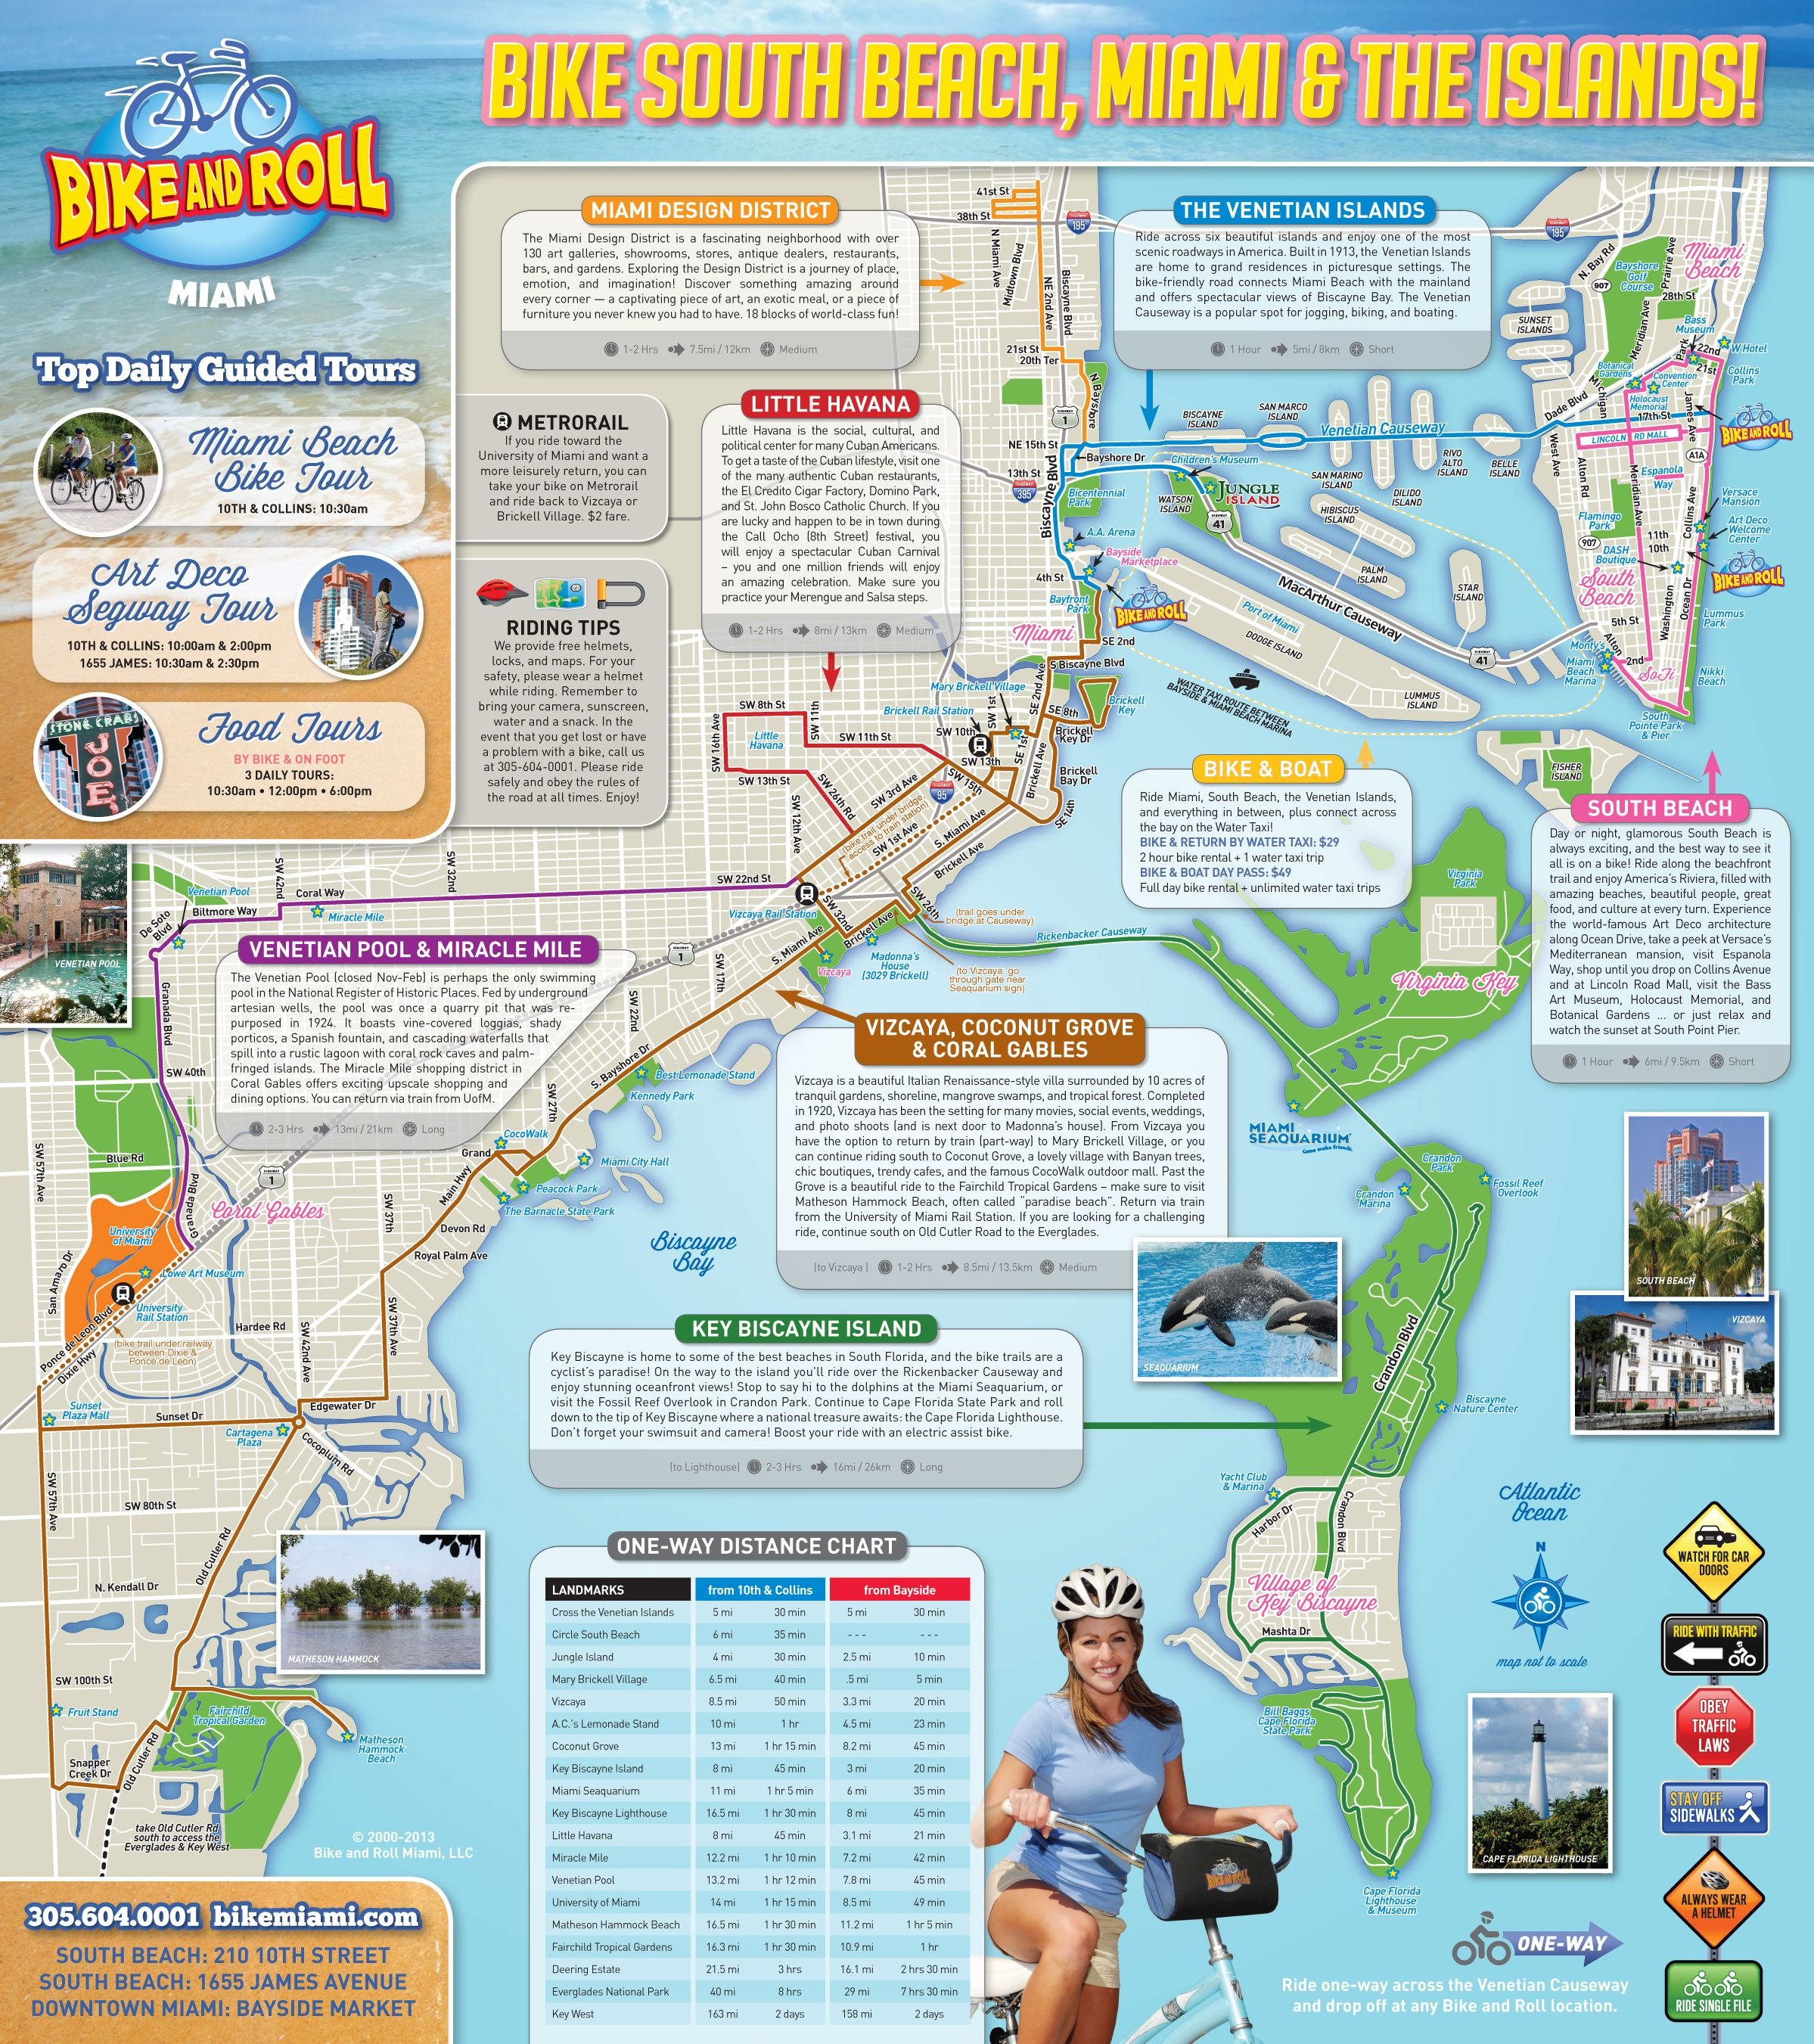 self guided bike tour map of miami beach - google search in